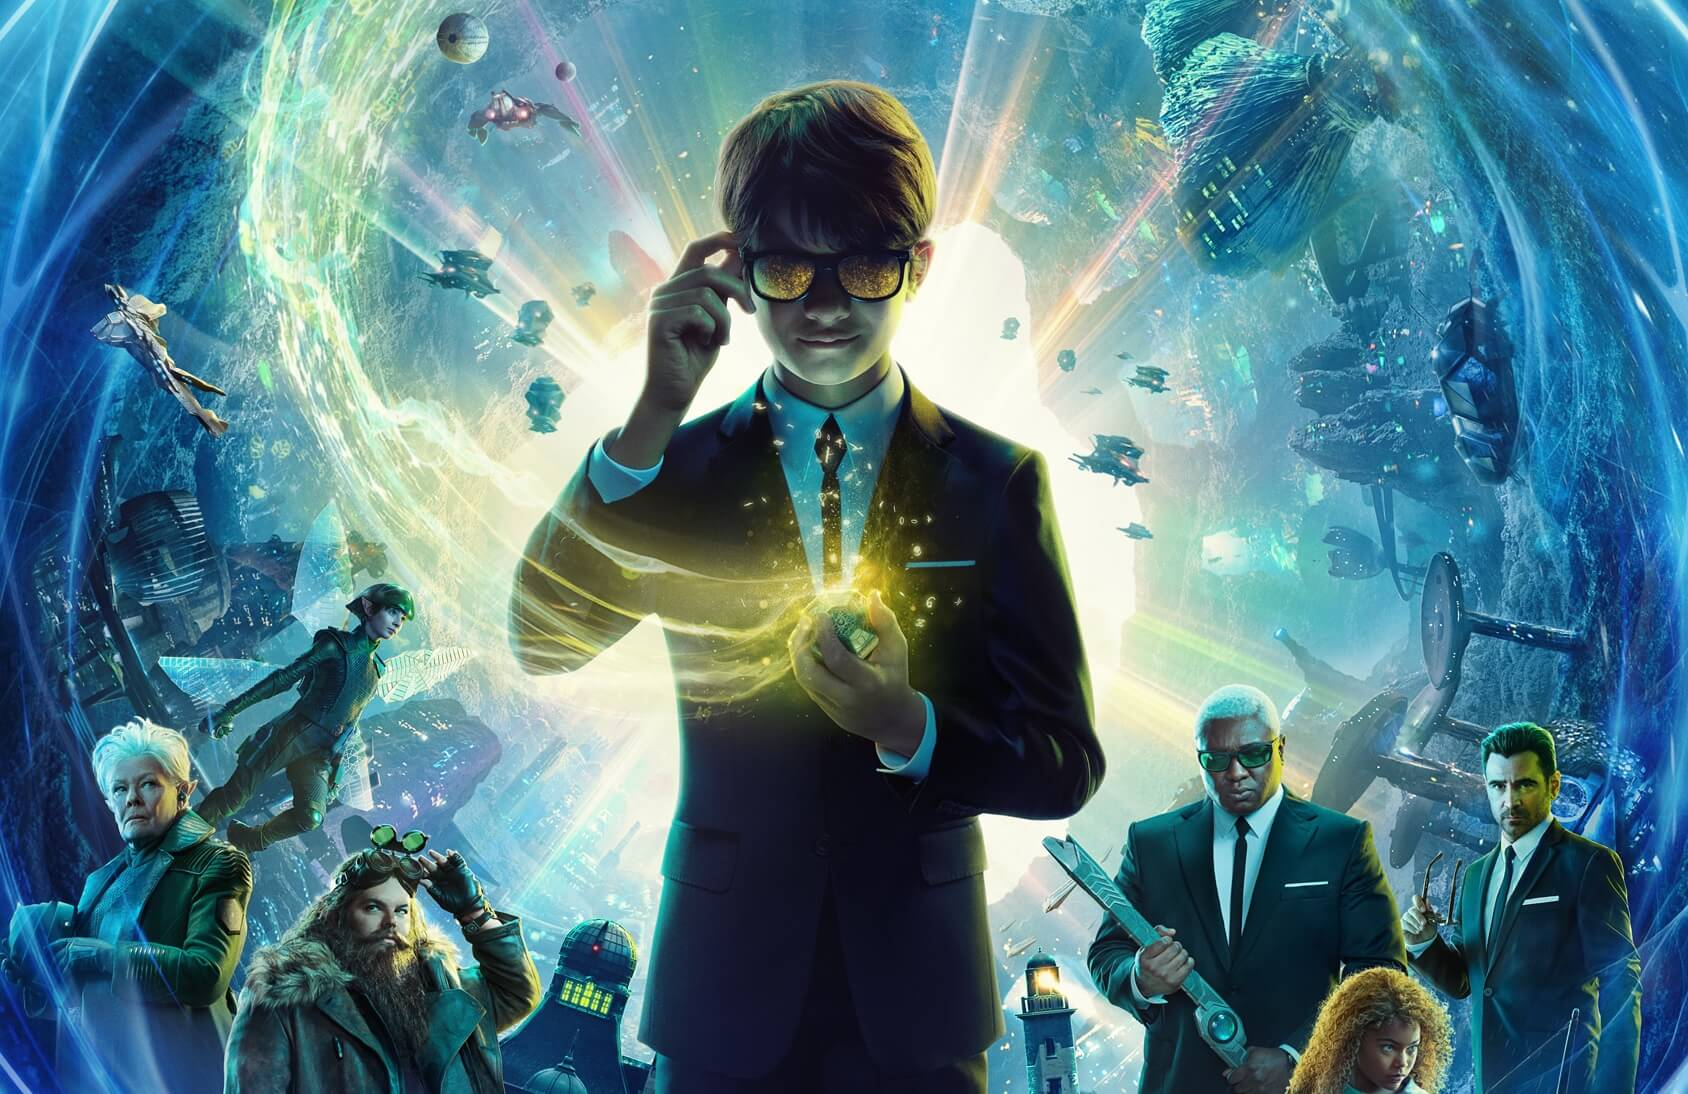 Official key poster for Disney's Artemis Fowl (2020). A young boy holding the frame of the sunglasses he wears looks towards the viewer with a mischievous expression. He holds an obscured, glowing object in his left hand towards his chest, standing centerfold in front of a nebulous like space with numerous objects floating in the background. Other characters from the cast surround him, receding into the background.